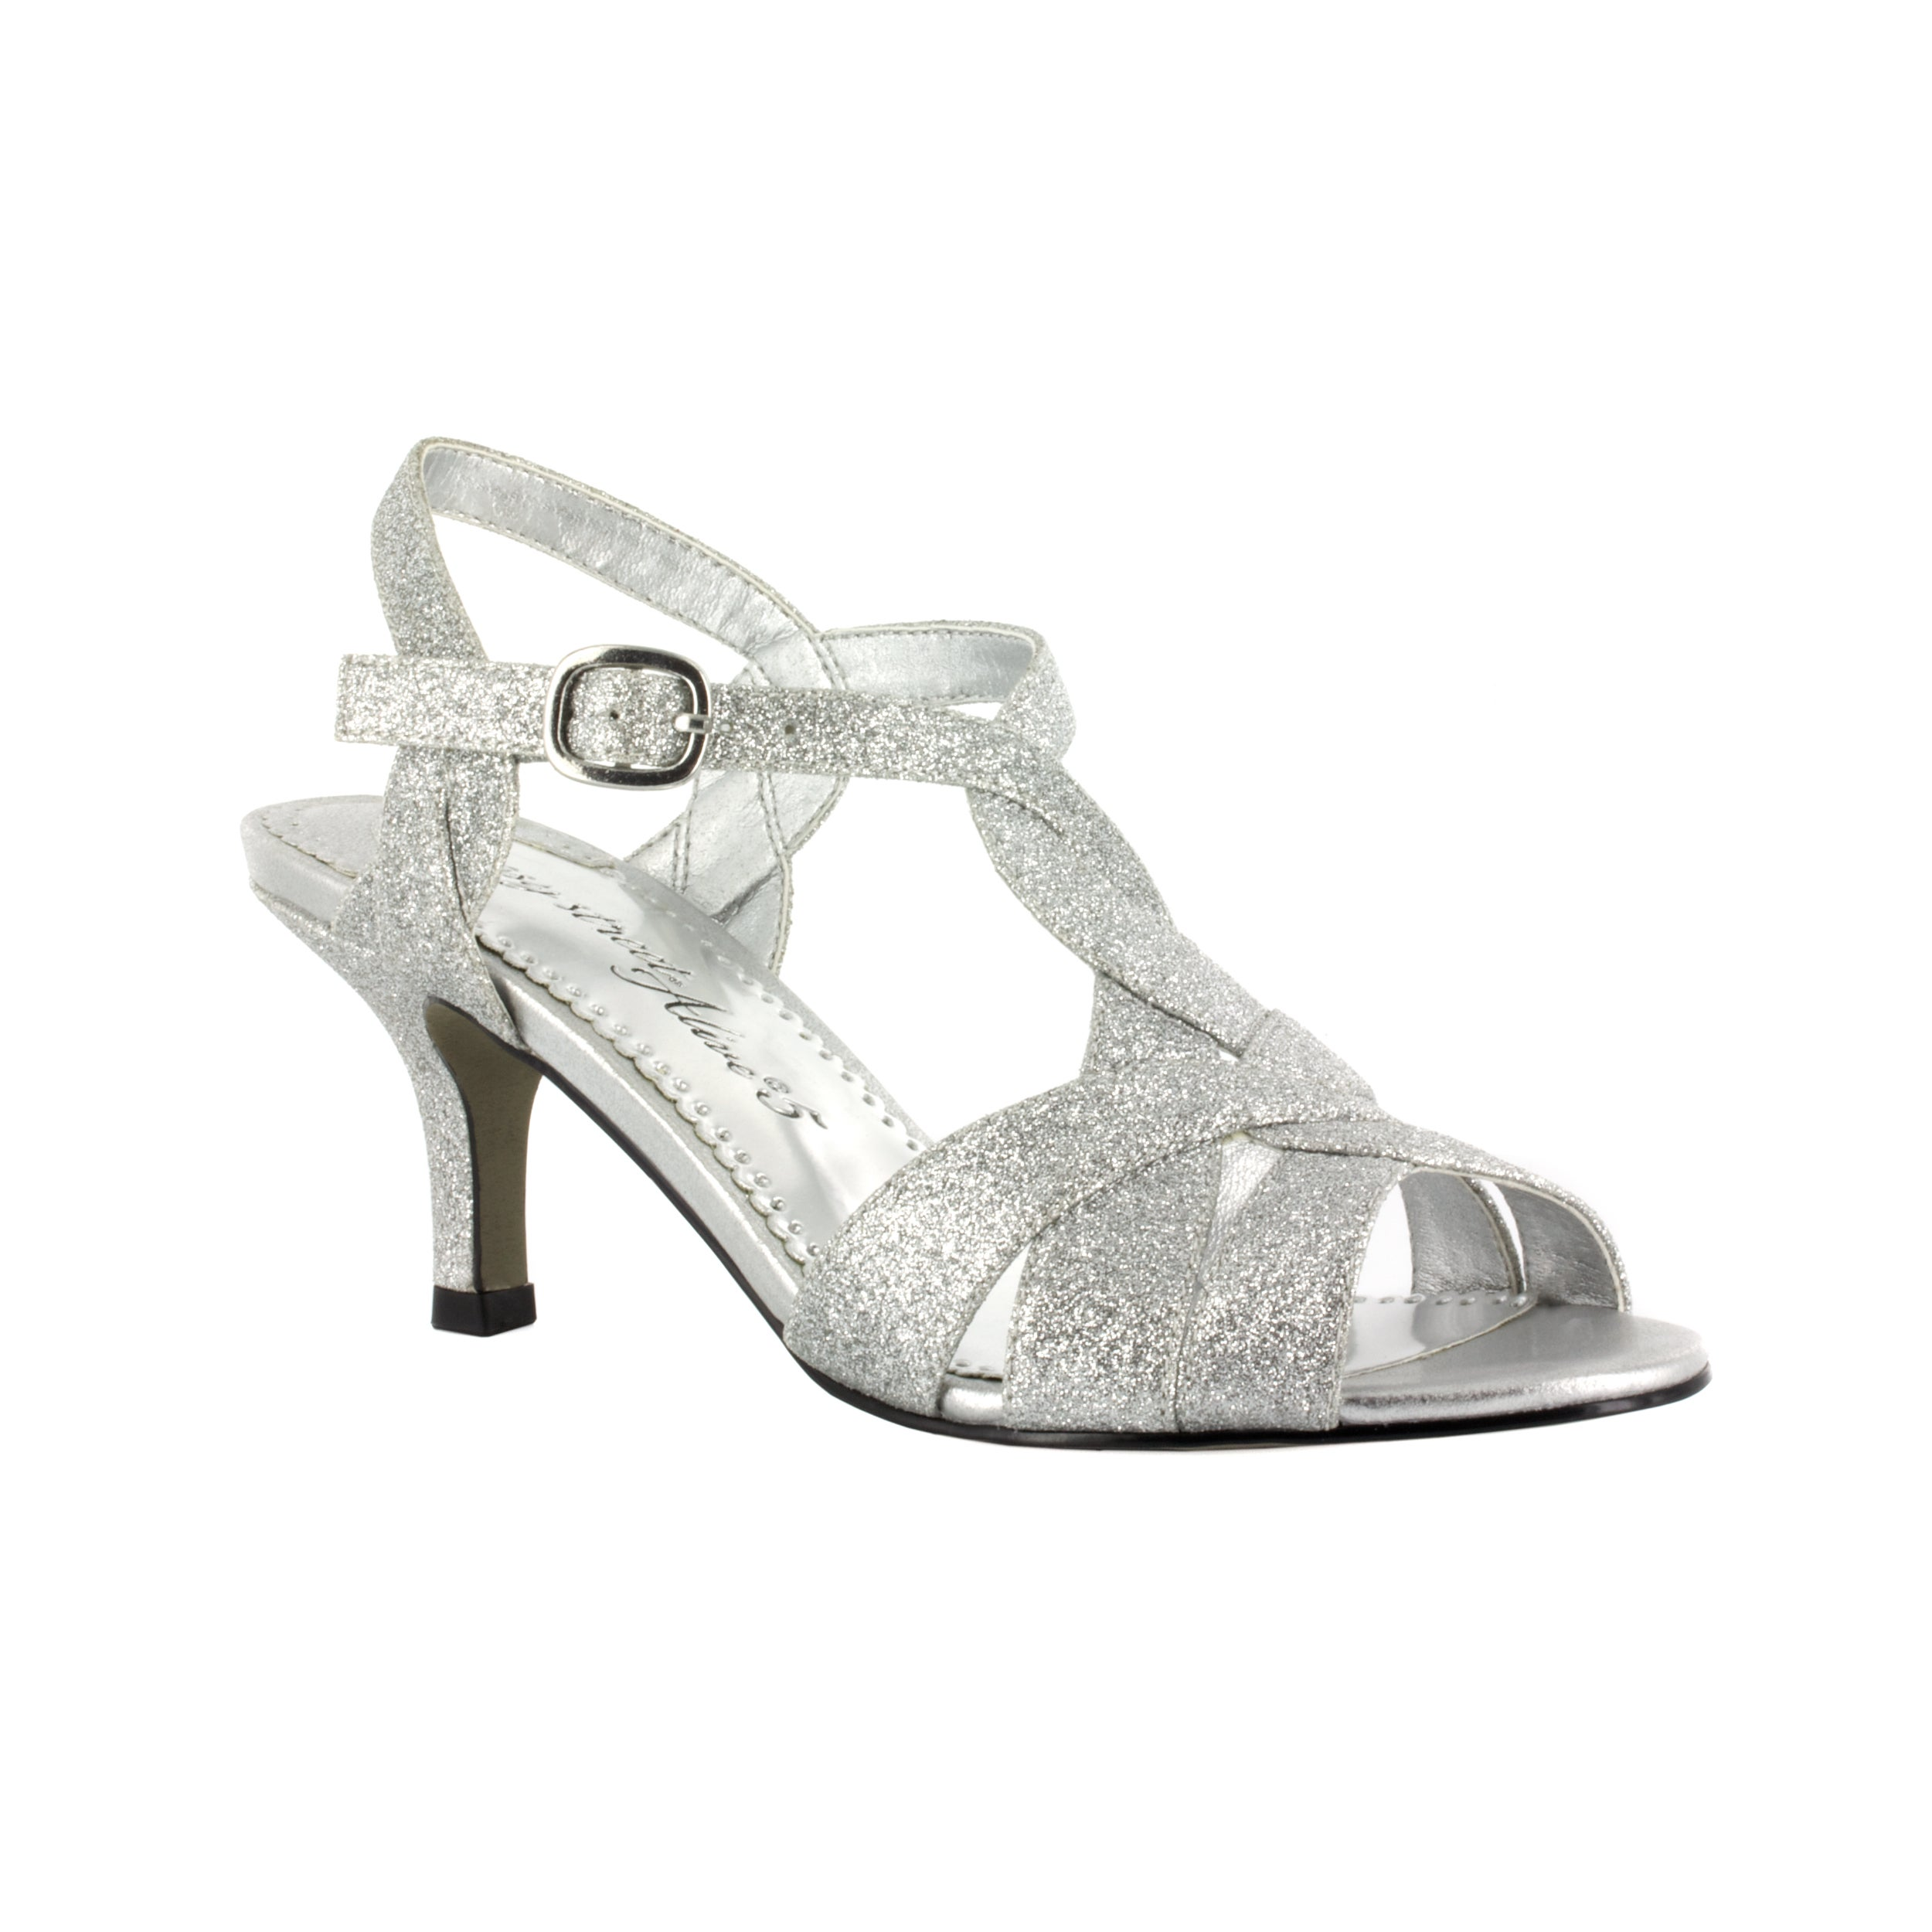 f9af36acbb29 Shop Easy Street Women s Glamorous Evening Shoe (Silver Glitter ...